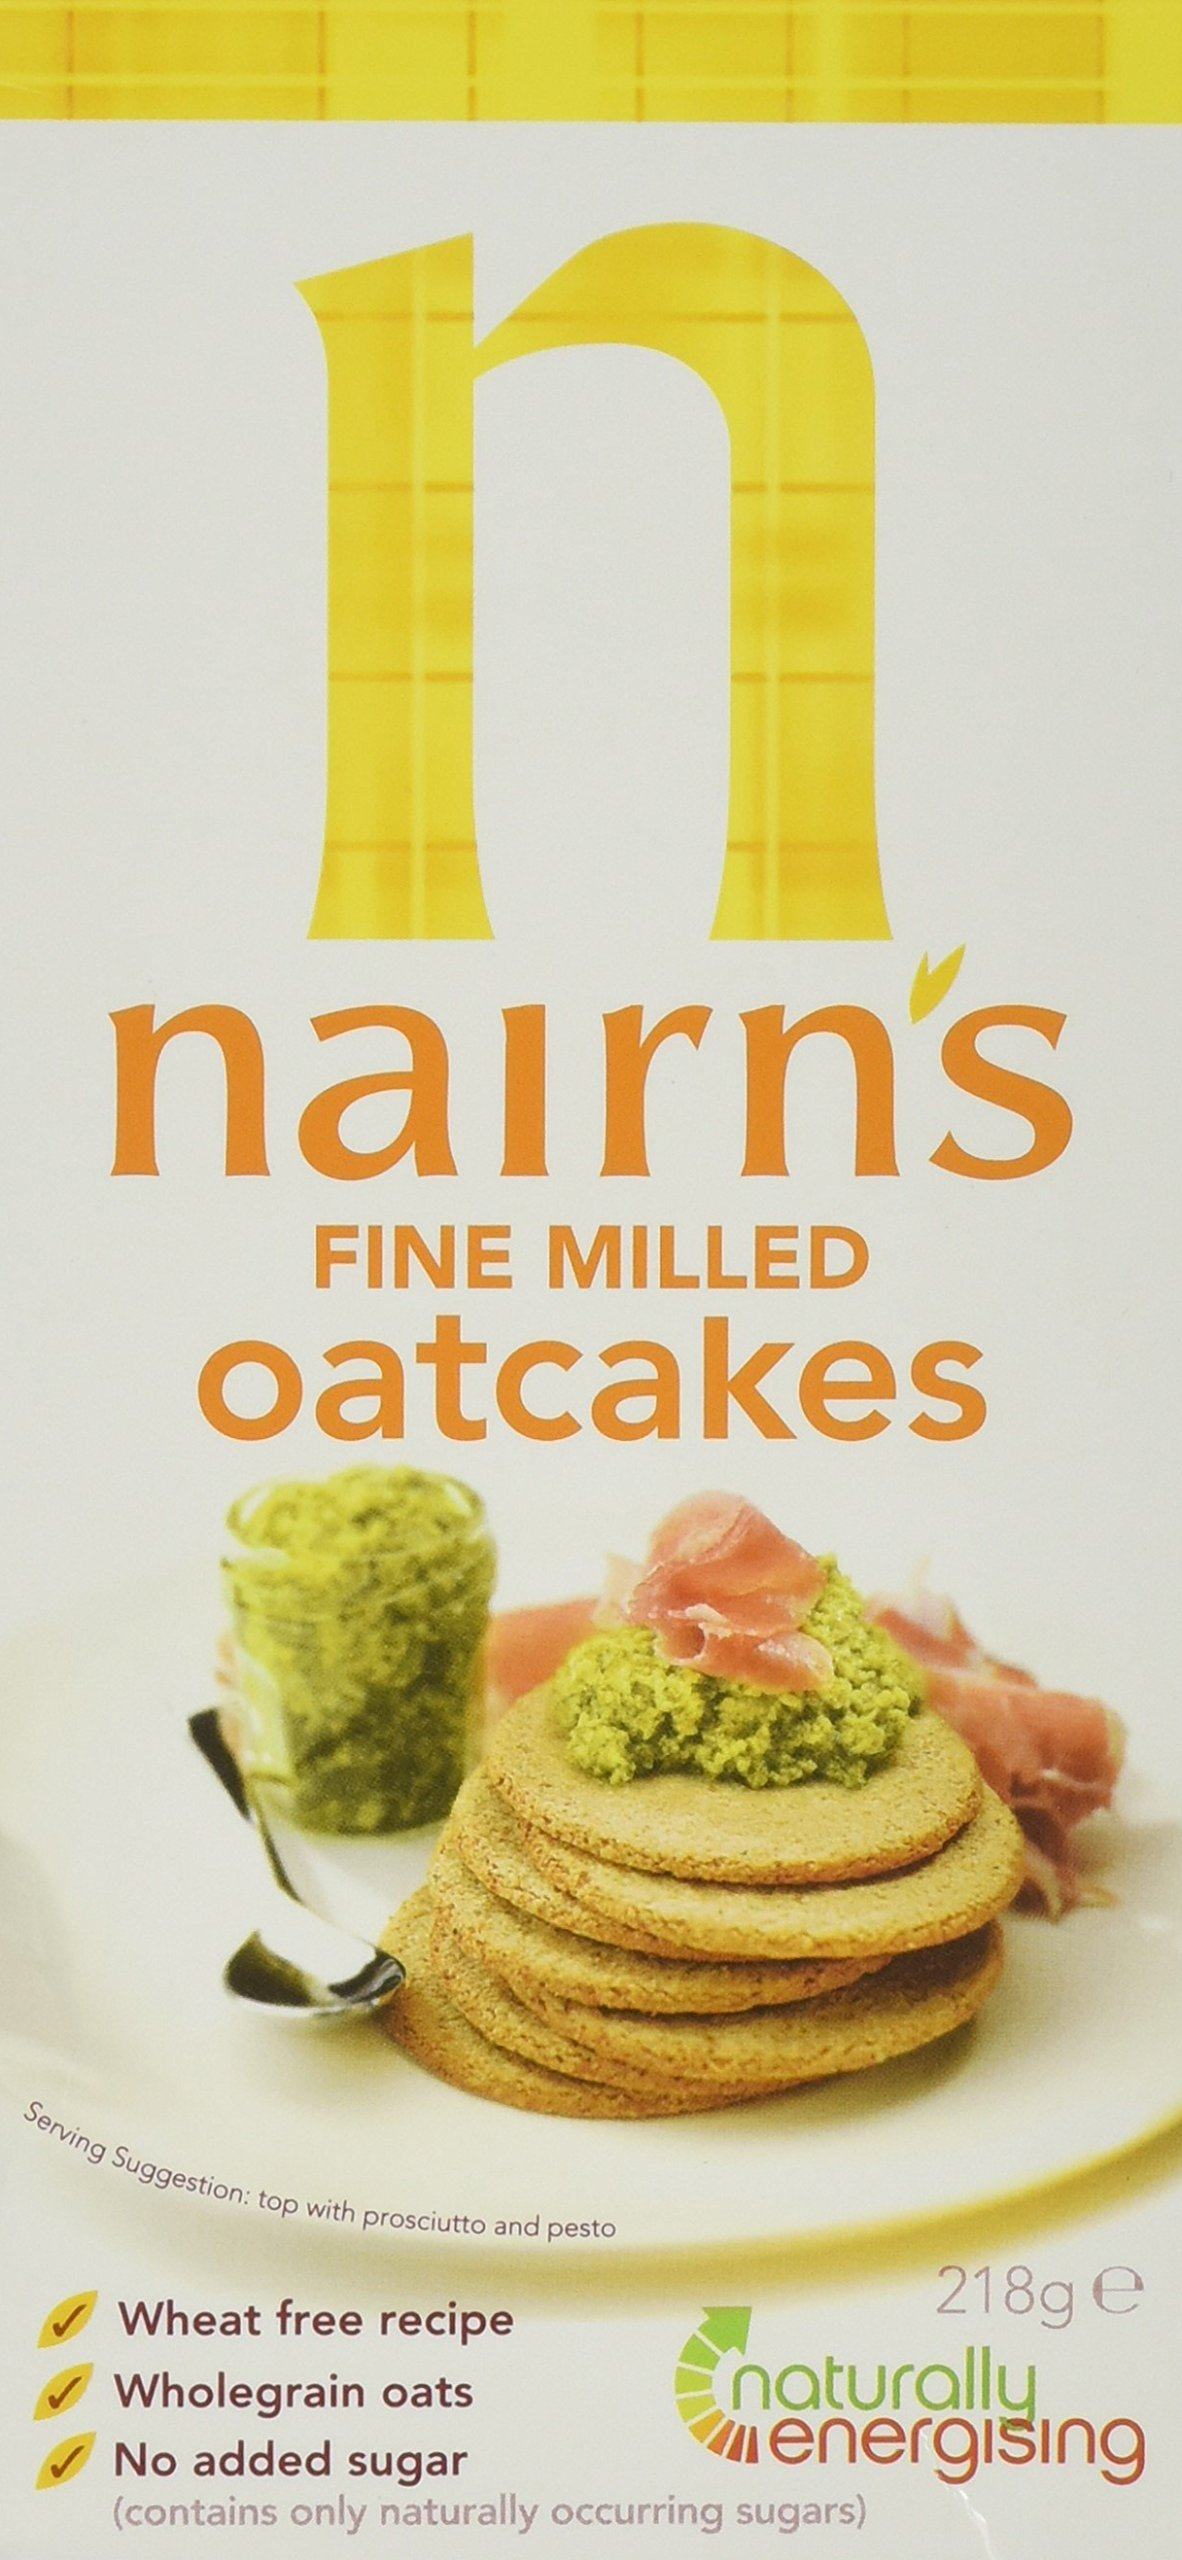 Nairn's Fine Oatcakes 218g - Pack of 2